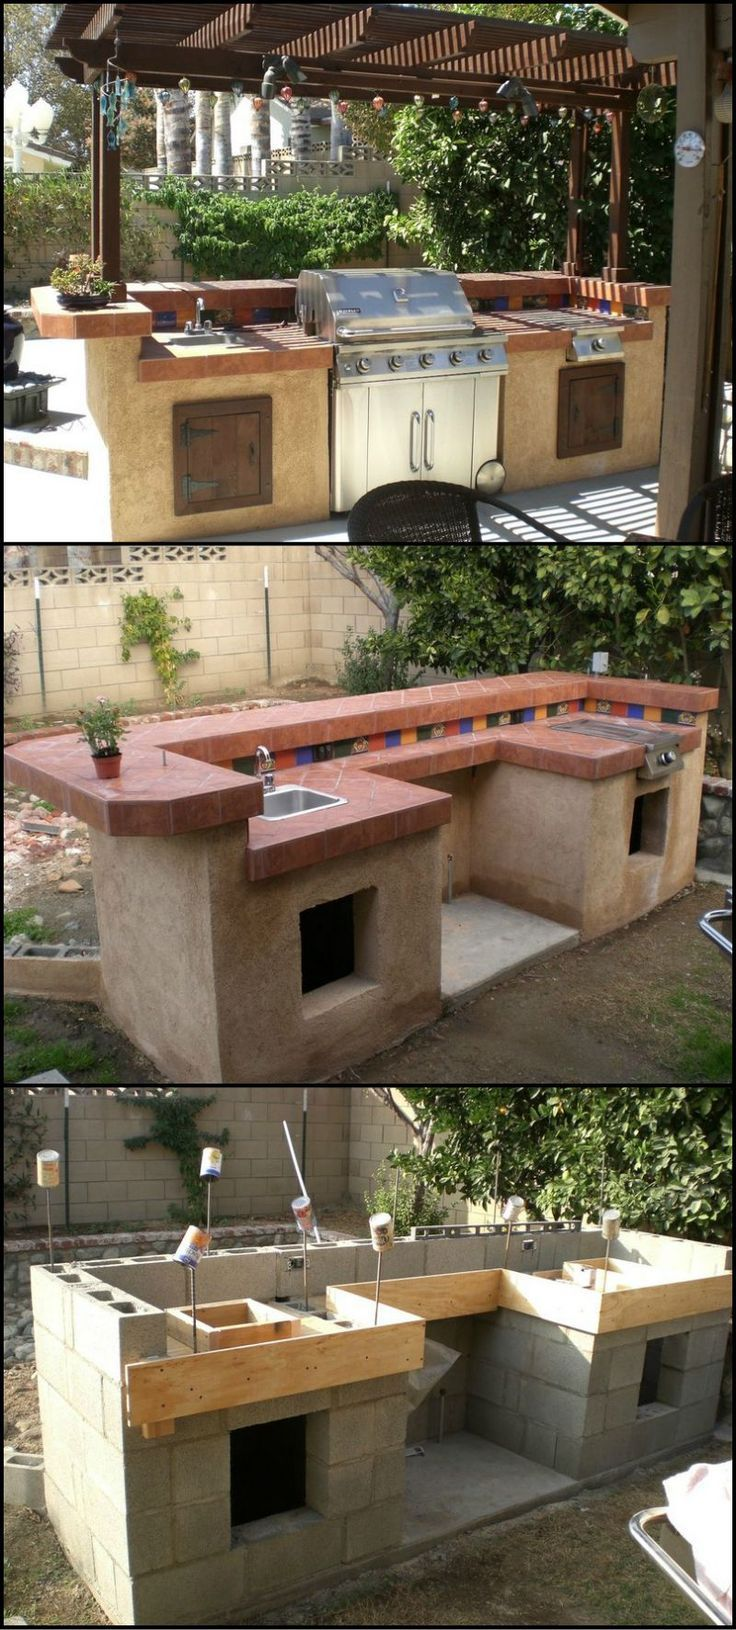 Diy patio furniture cinder blocks - 15 Wonderful Diy Ideas To Upgrade The Kitchen3